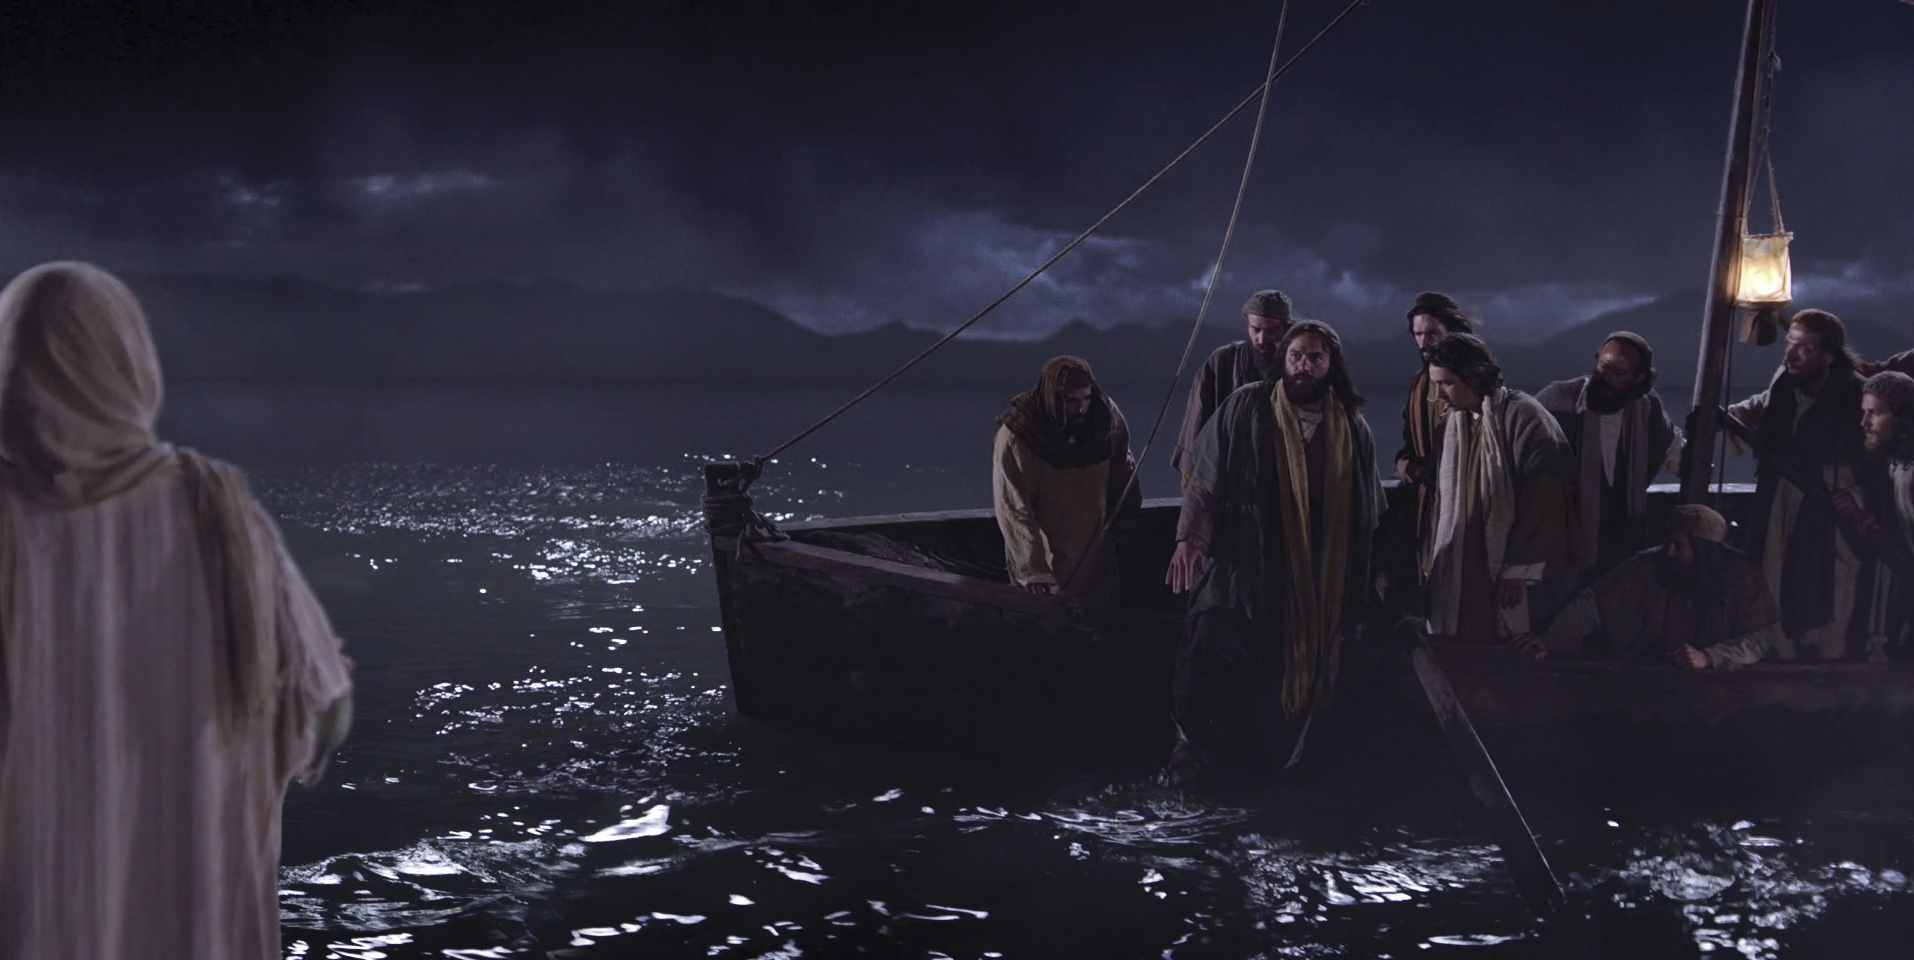 The disciples in their ship see Jesus walking on water.